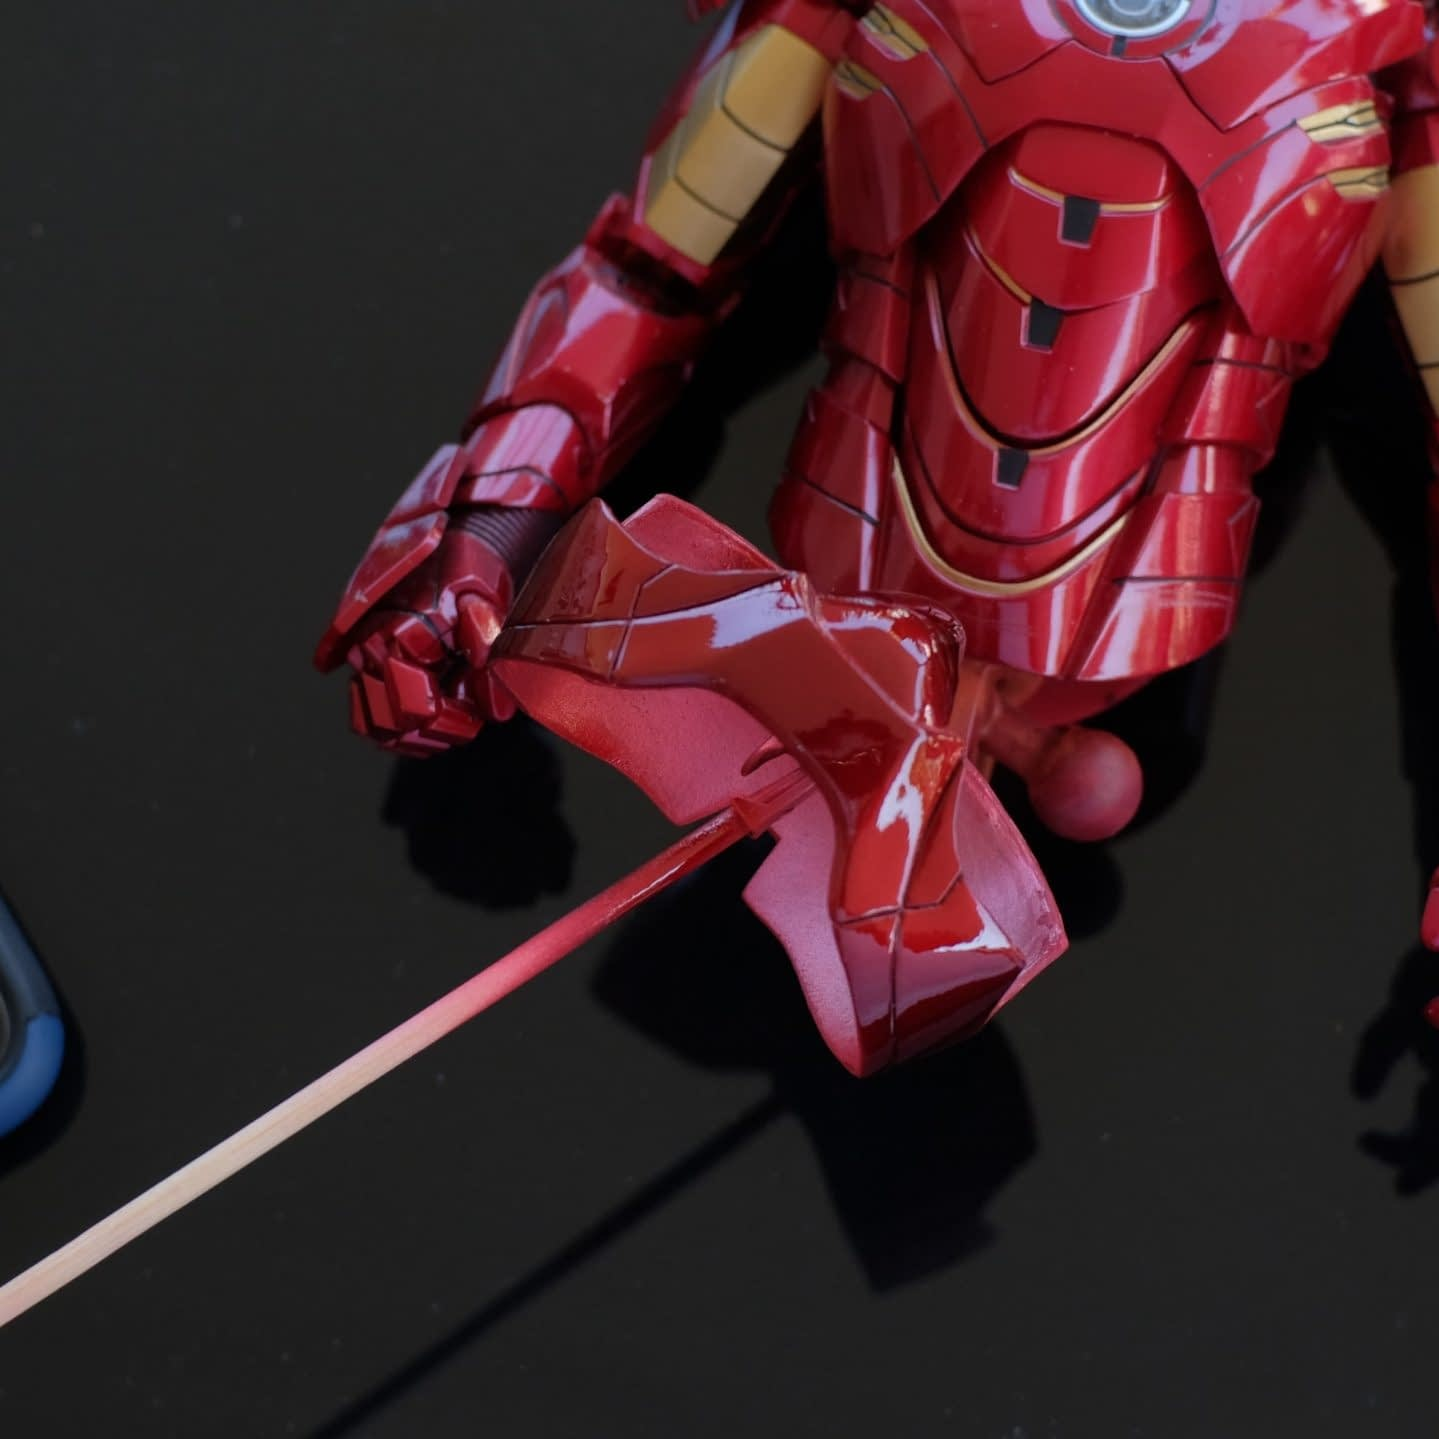 How to fix HT's Iron Man pink panty issue 23